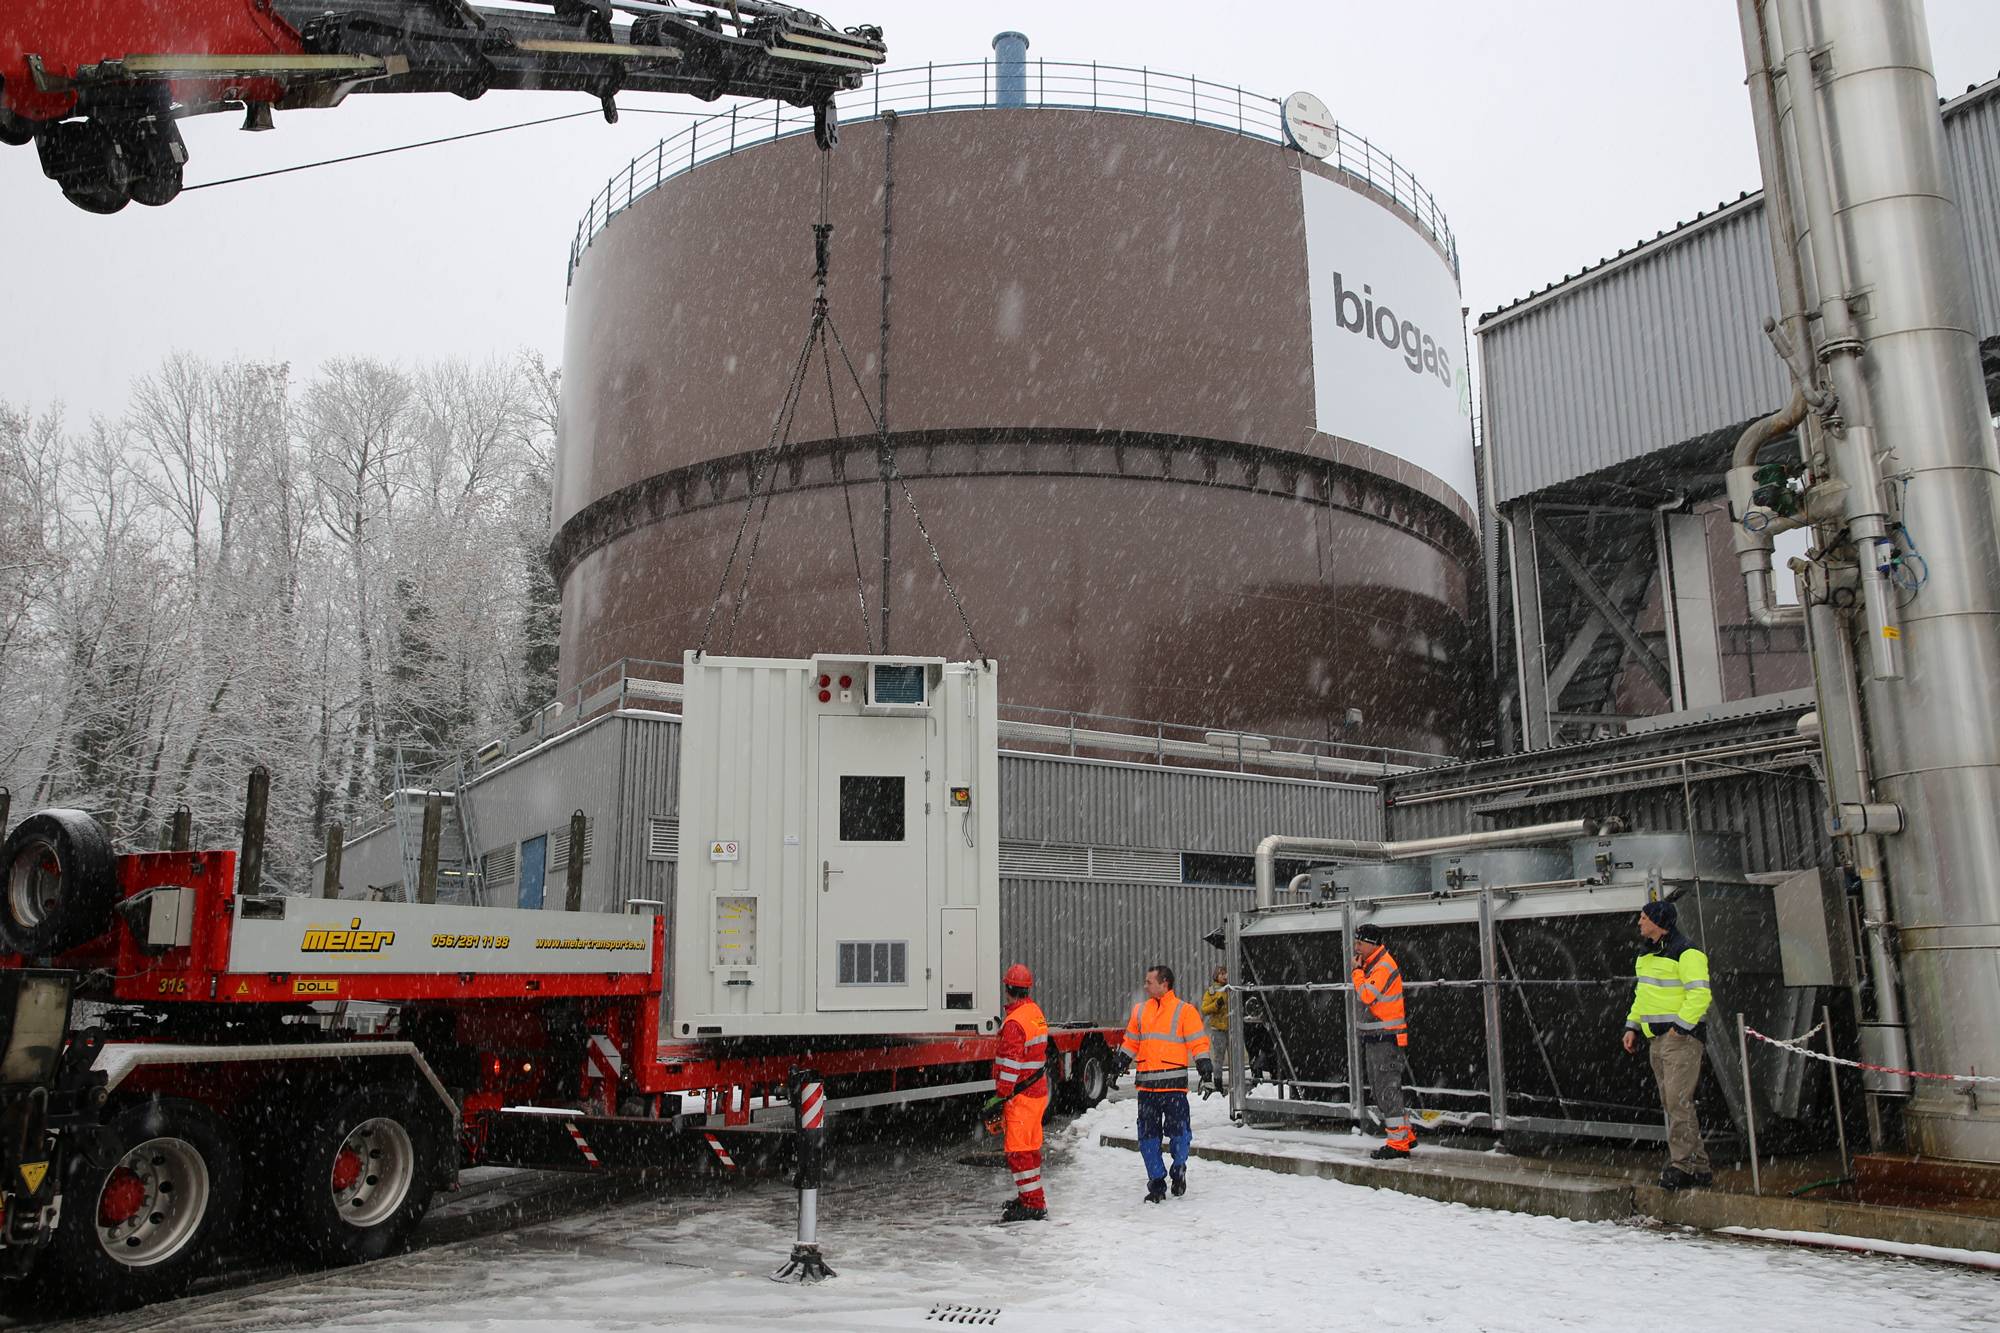 Arrival at the Werdhölzli biowaste digestion and wastewater treatment plant: The long-term test will be conducted on-site in spring 2017 under real operating conditions. The methane produced in the process will be fed into the existing natural gas network. (Photo: Energie 360°/Silvia Weigel)